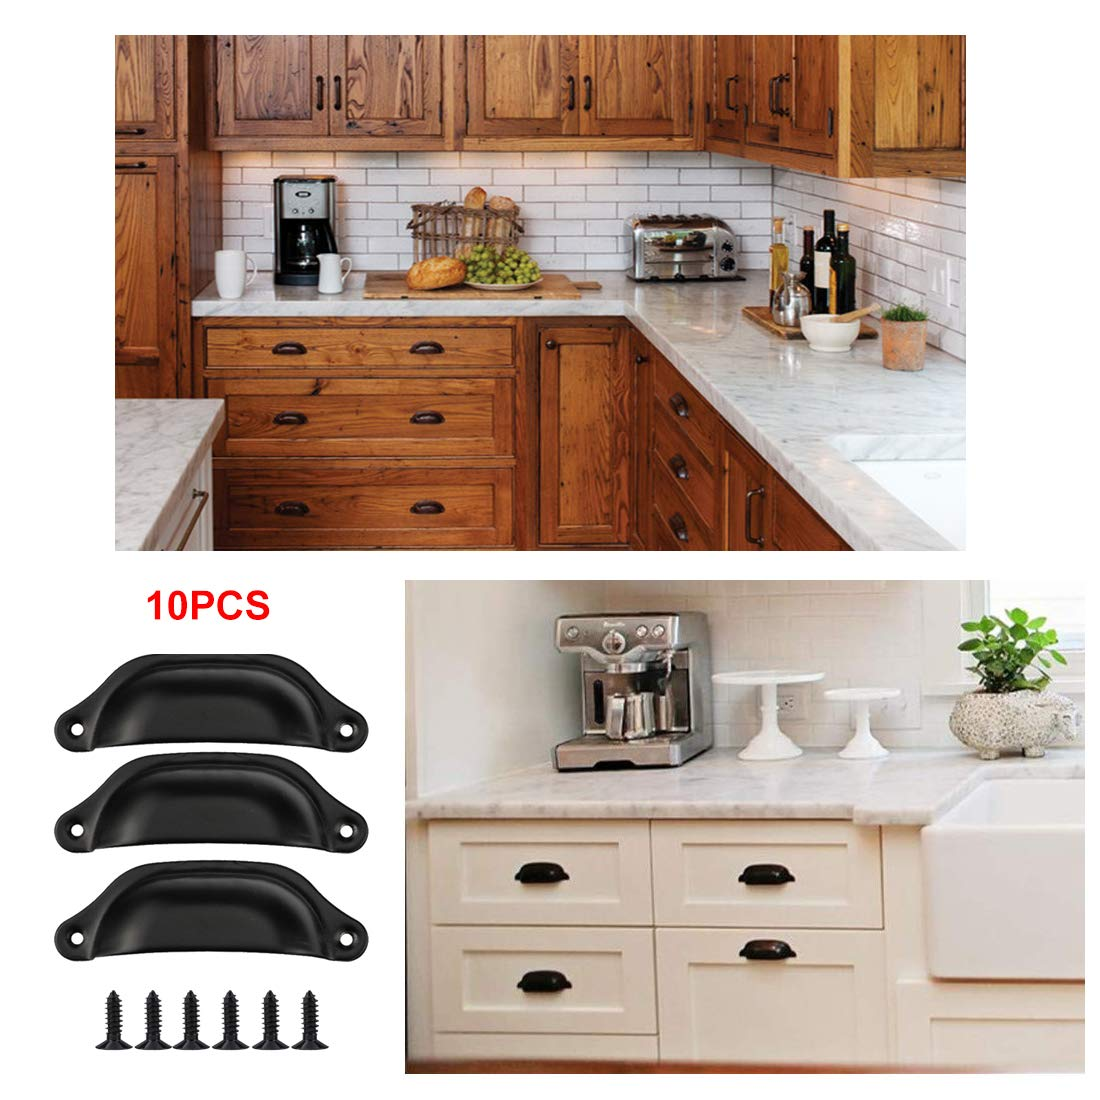 Drenky 10PCS Black Shell Pull Handles 65mm Hole Center Distance Half Moon Vintage Drawer Cupboard Door Cupped Handles Pulls Knobs with Screws